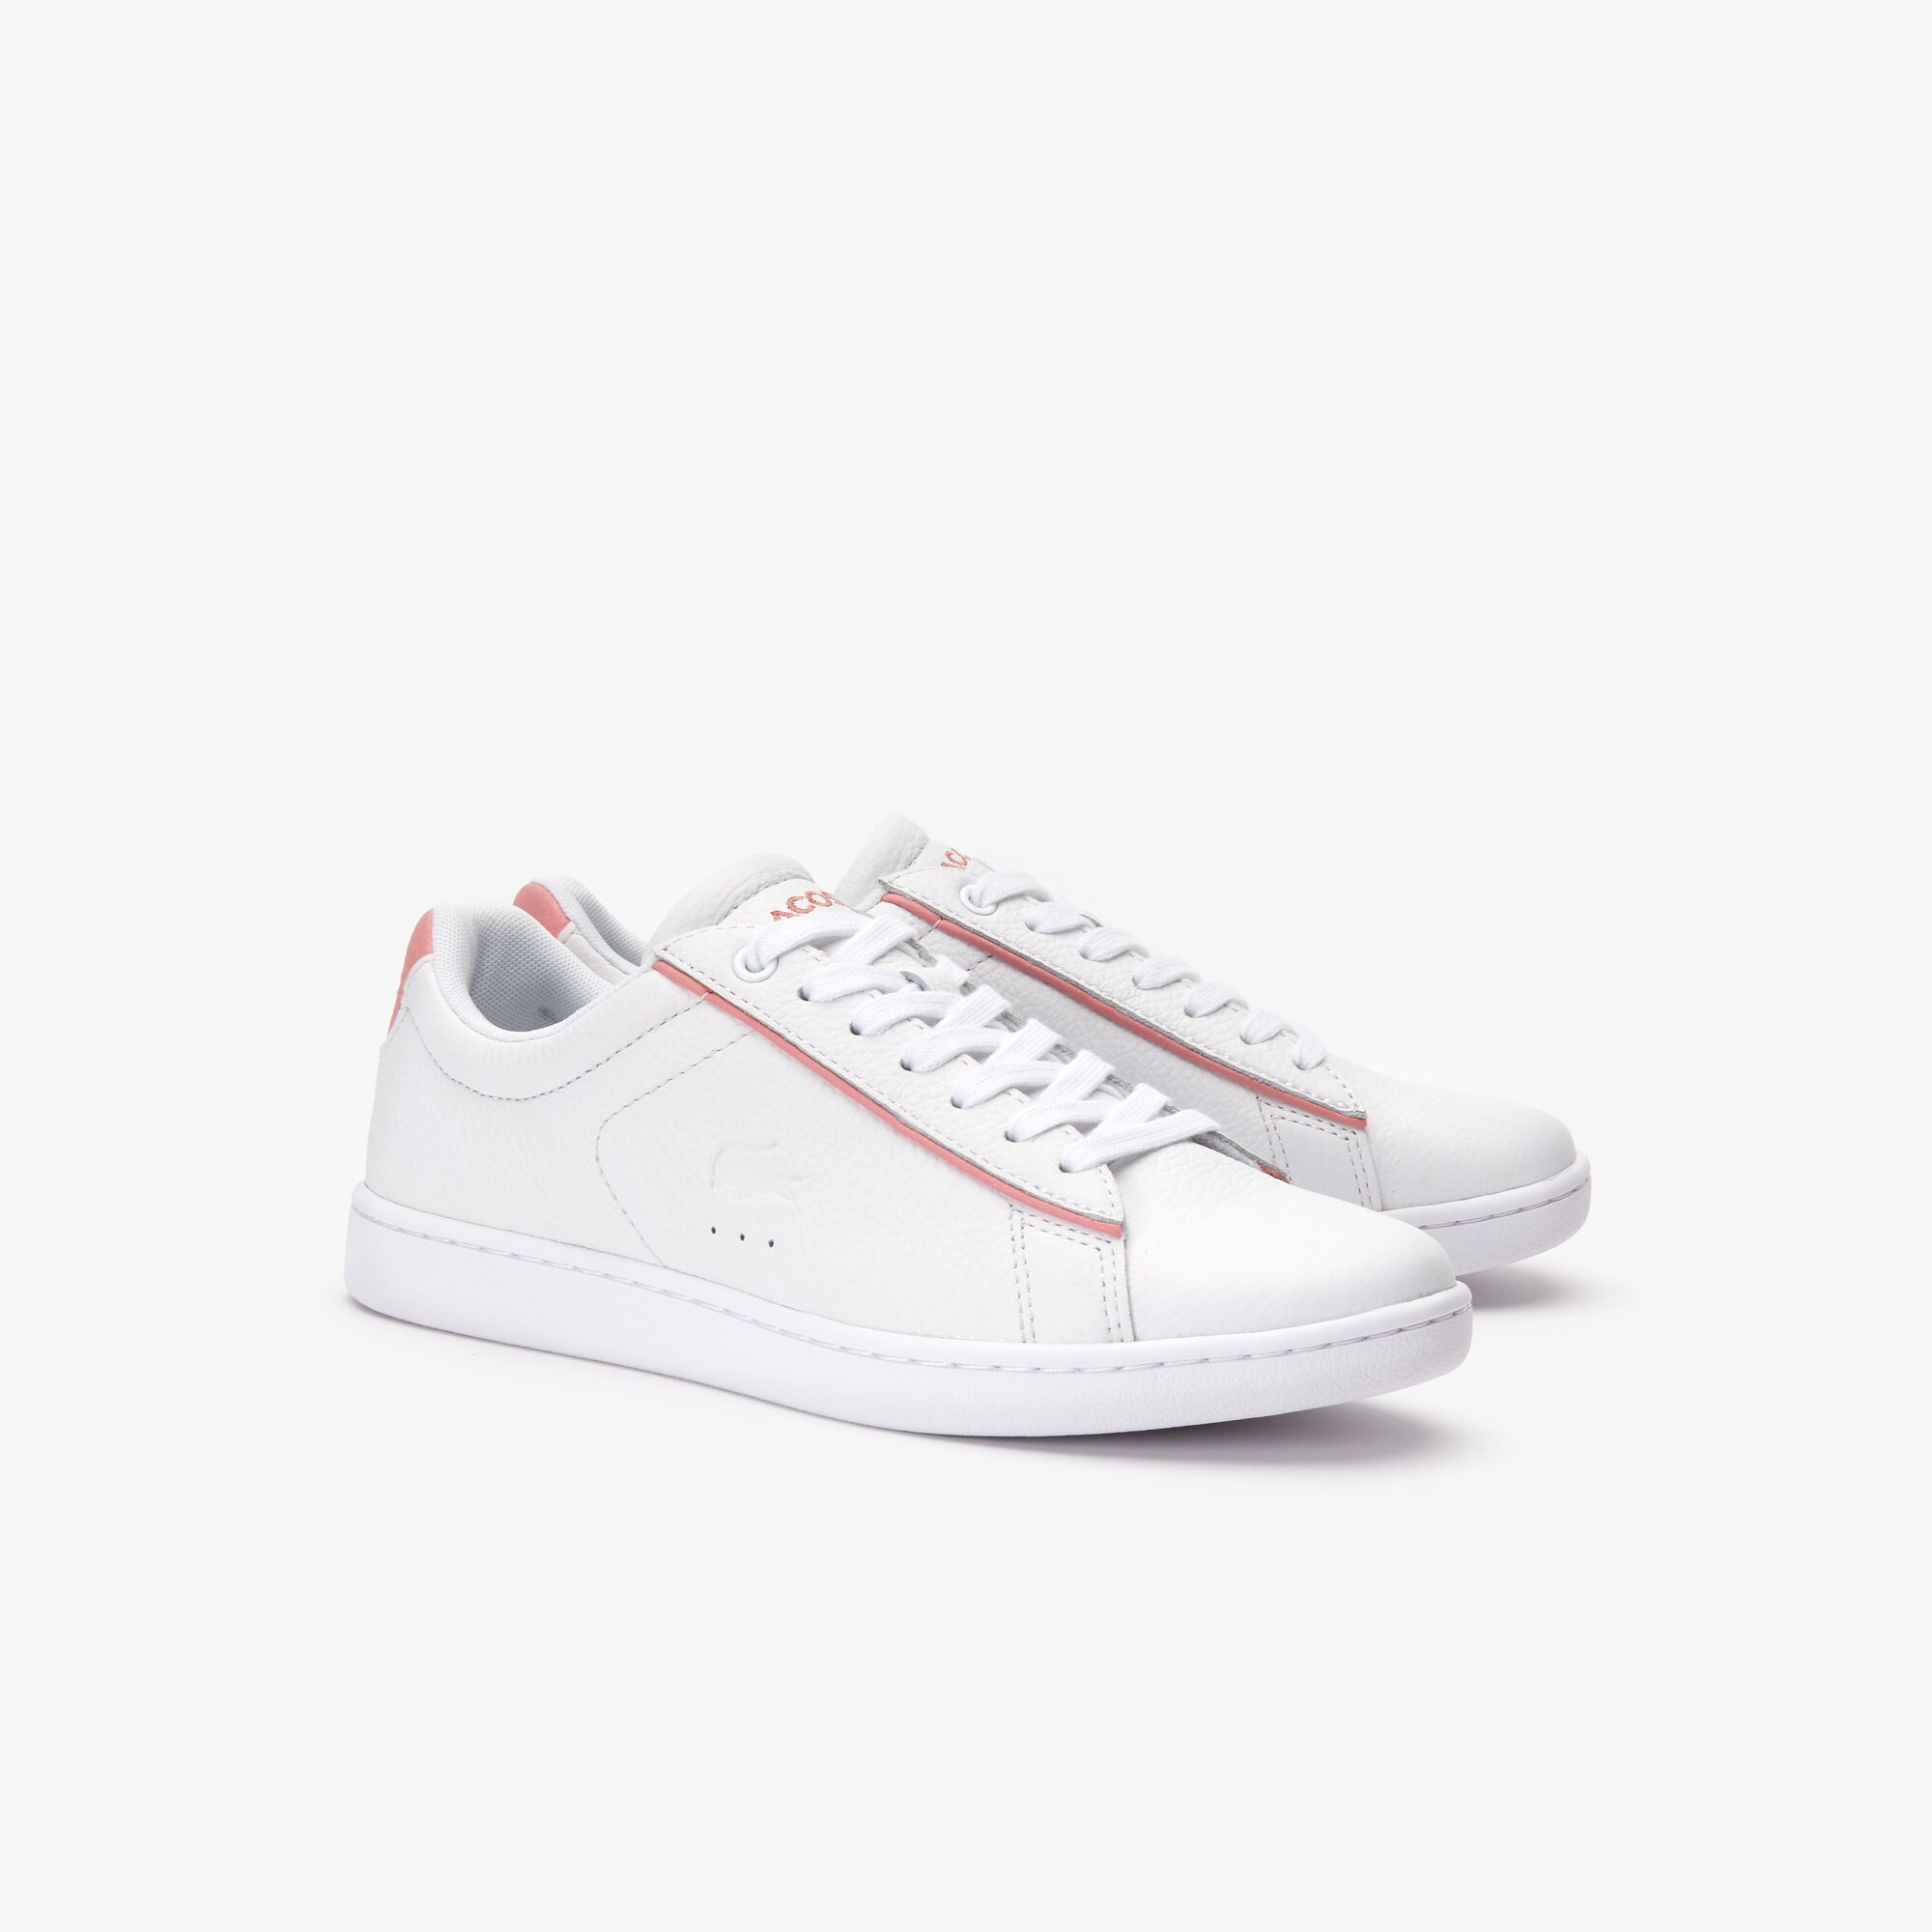 Sneakers da donna in pelle bottalata Carnaby Evo